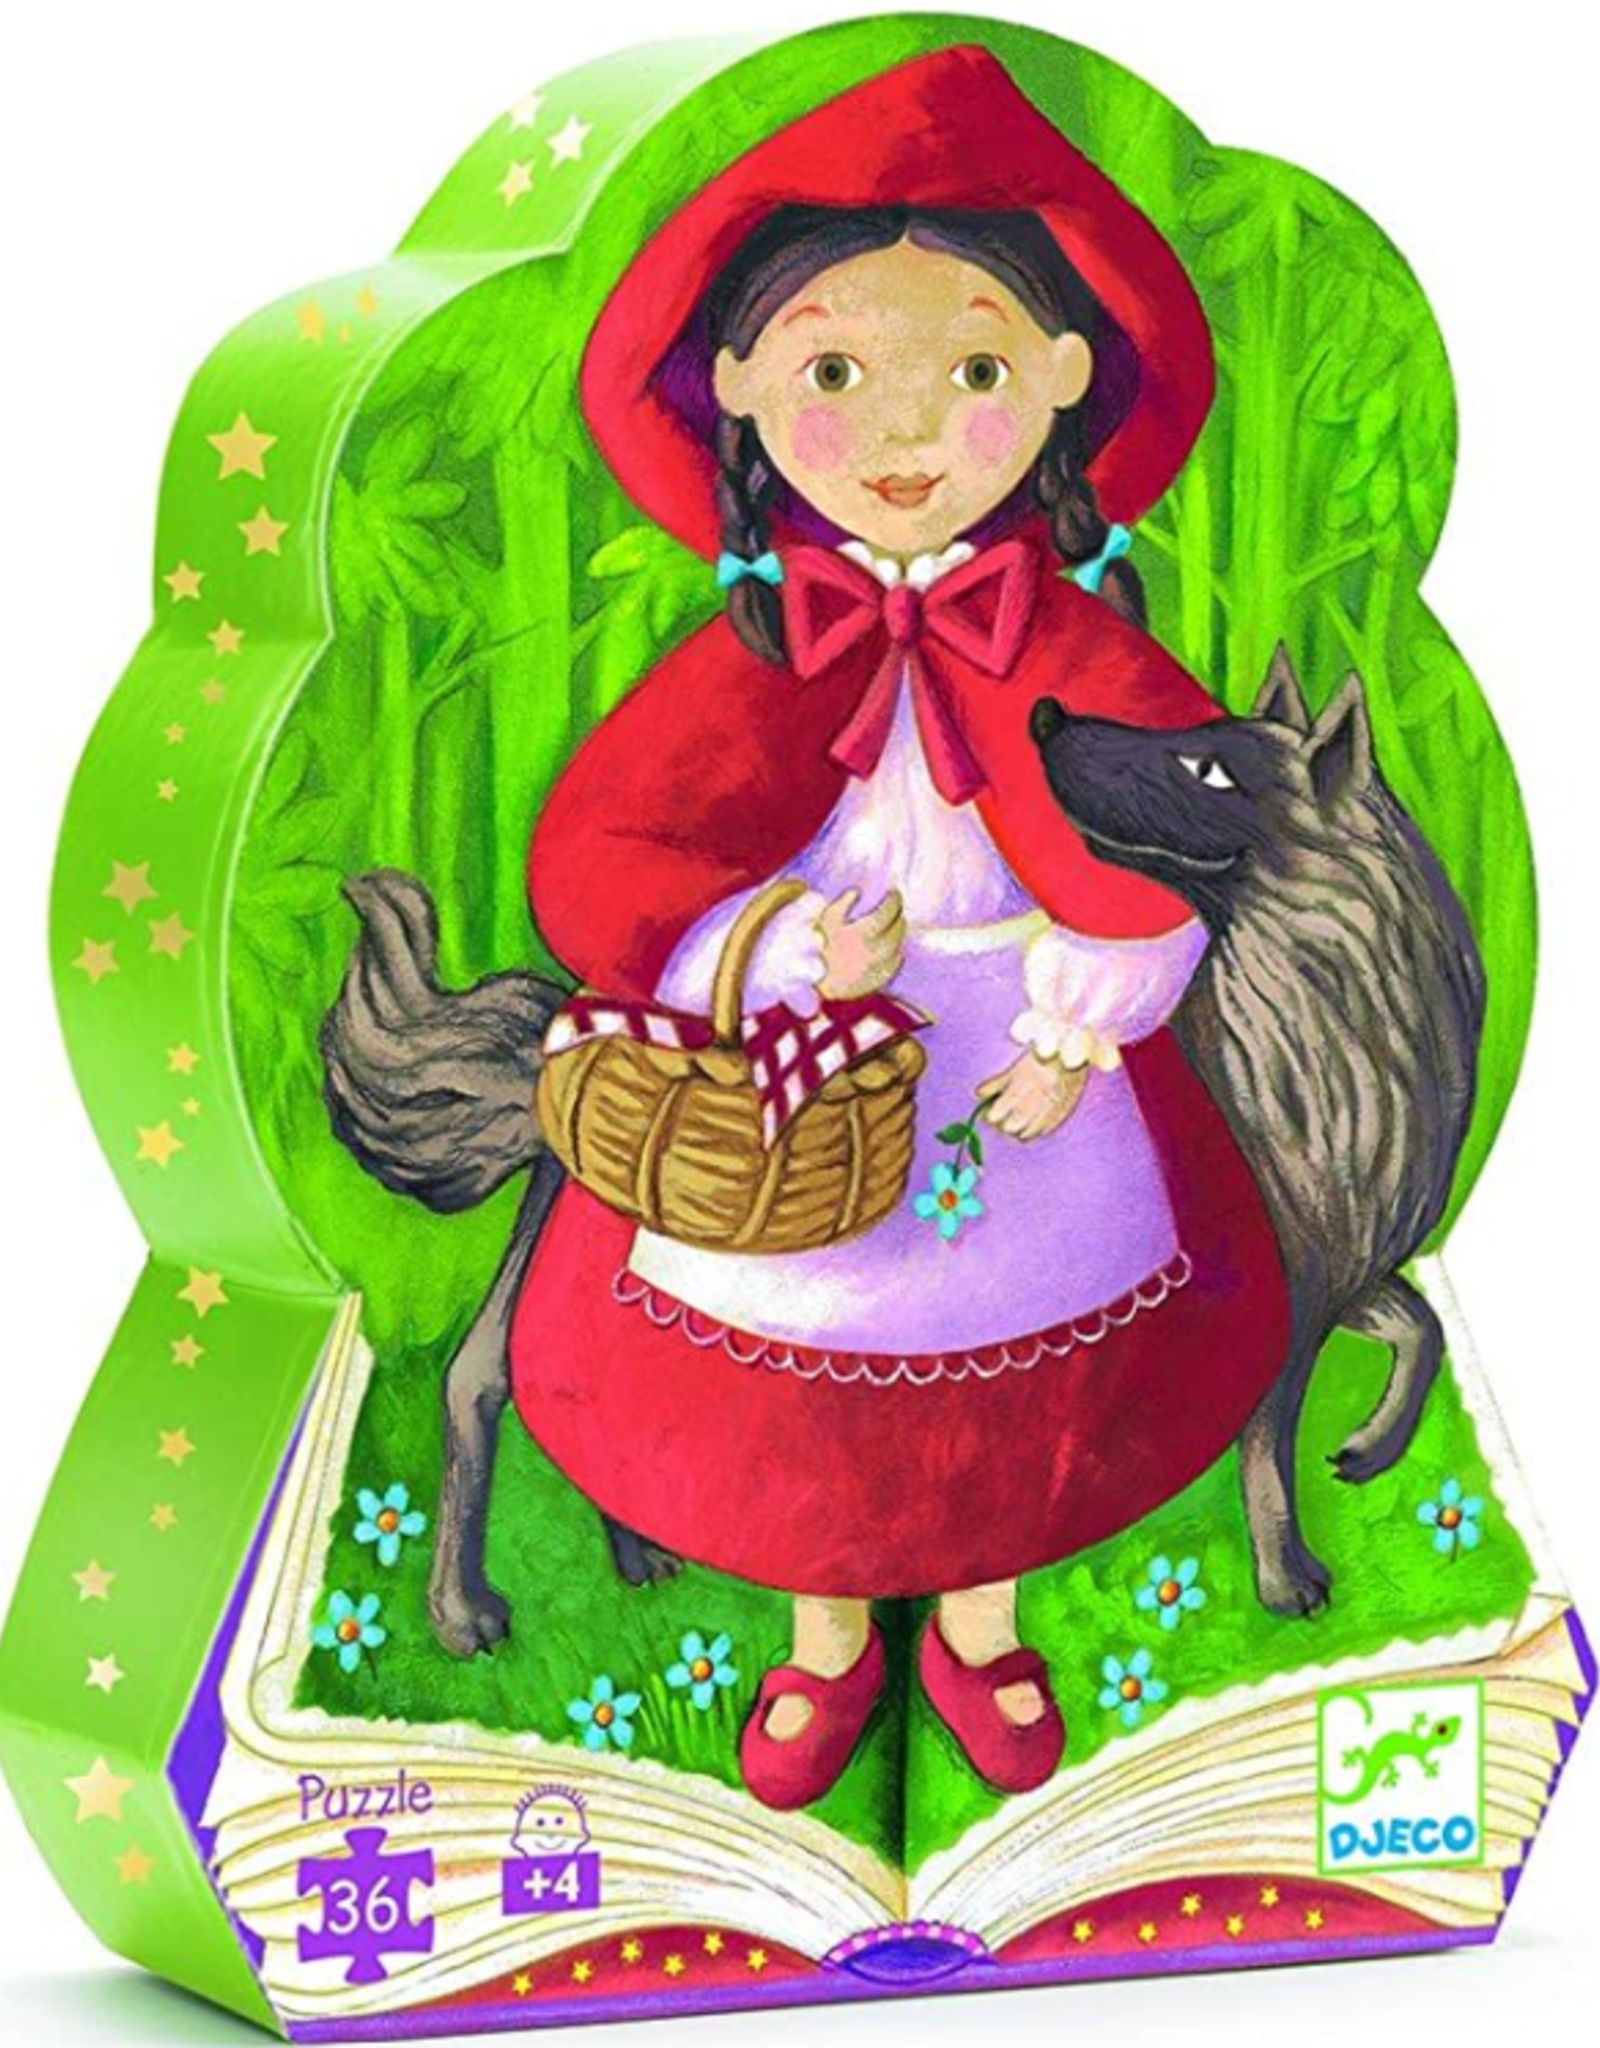 Djeco Little Red Riding Hood 36pc Silhouette Puzzle